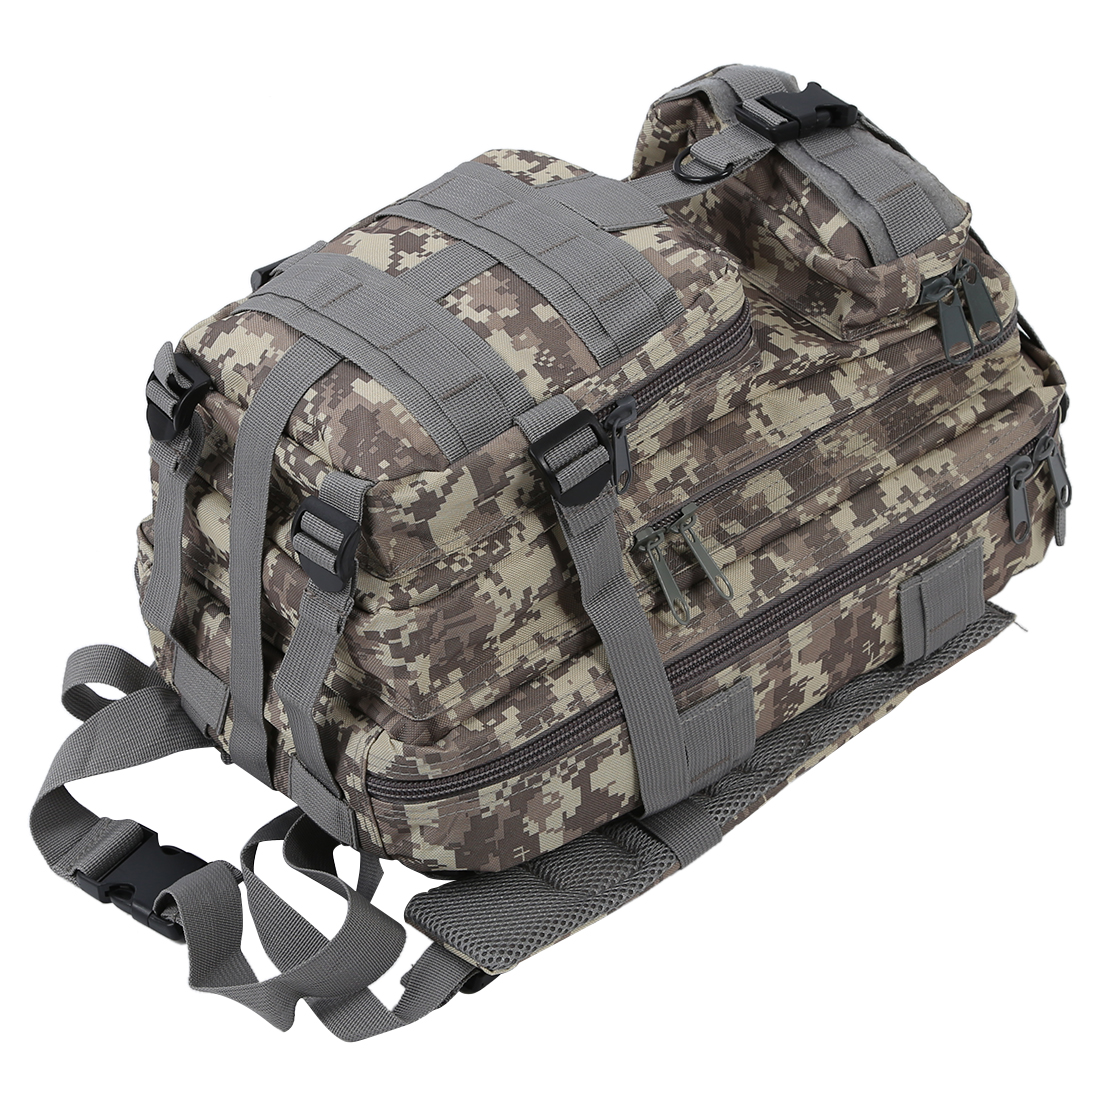 5 Pcs of (VSEN Hot 30L Military Army Rucksacks Molle Backpack Trekking Bag ACU Camouflage) vsen hot styleluggage bag replacement plastic 1 side rectangle buckle 10 pcs